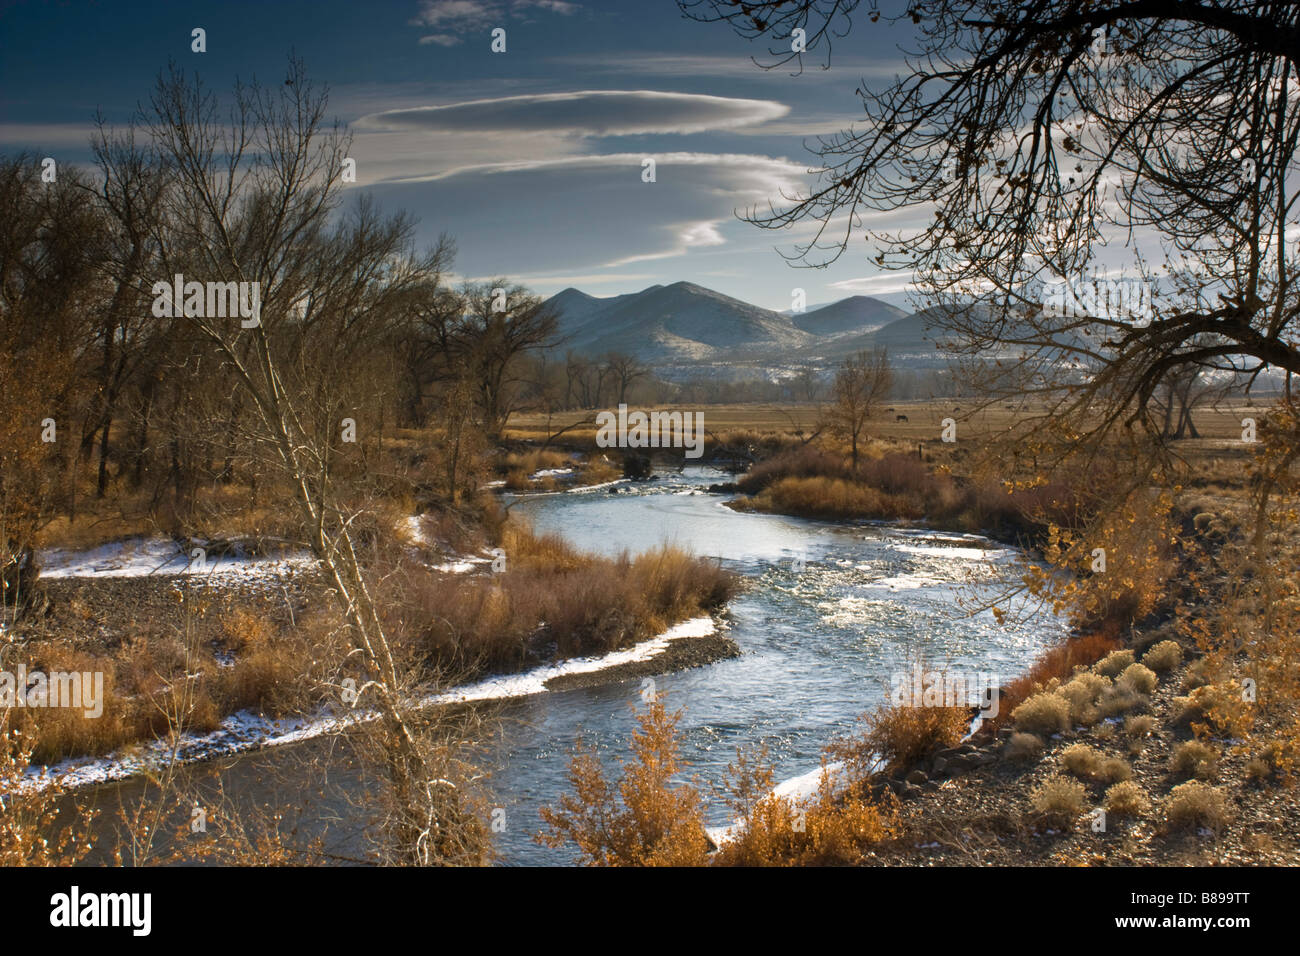 winter-view-of-the-truckee-river-from-wadsworth-nevada-with-lenticular-B899TT.jpg